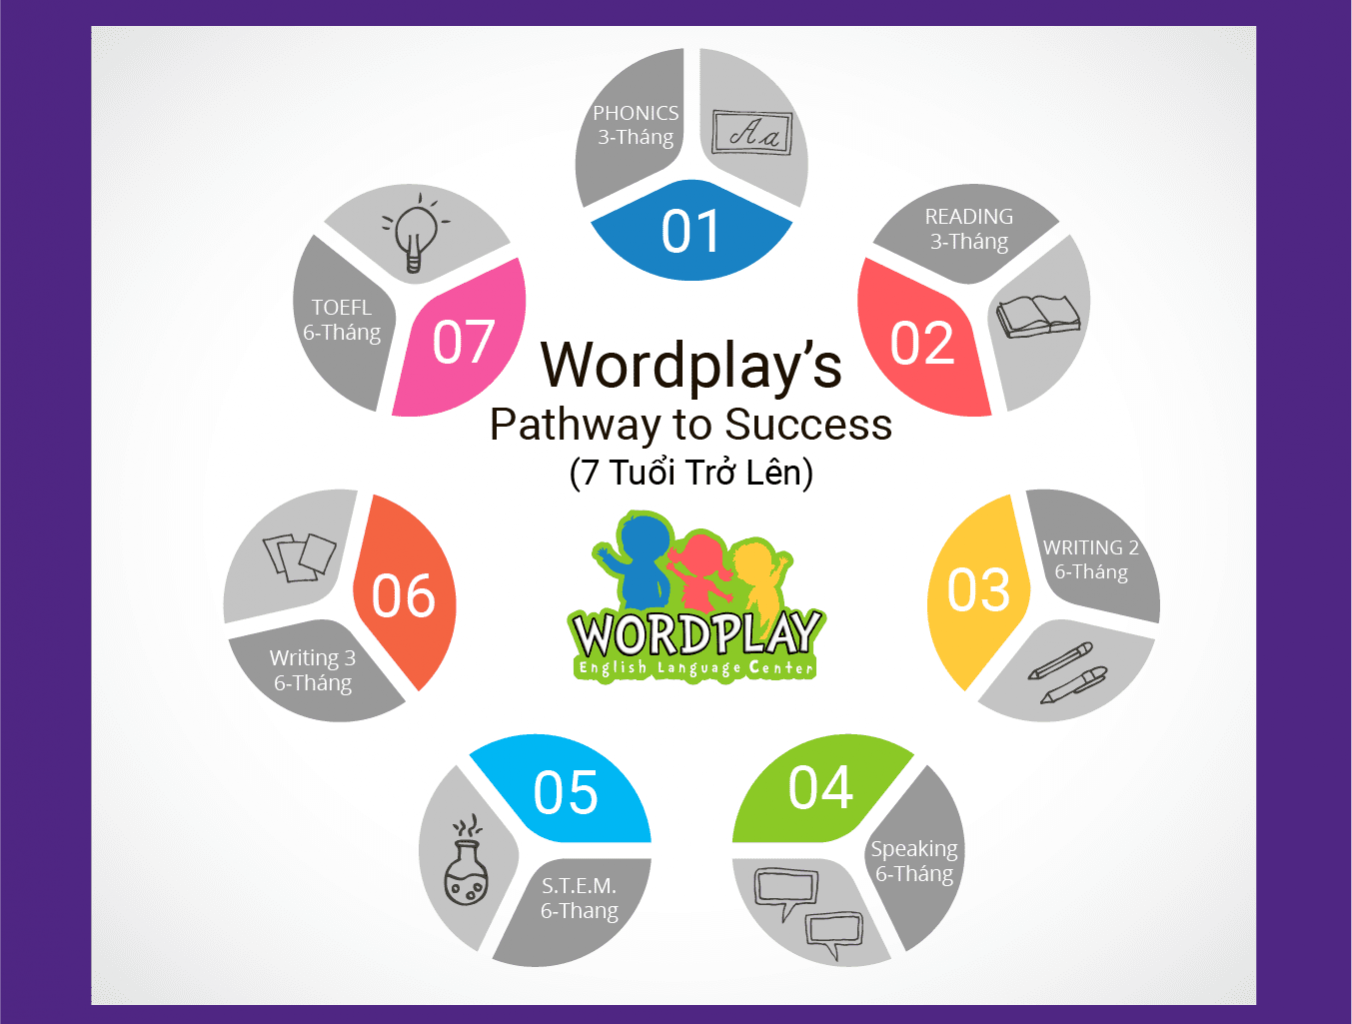 This image shows Wordplay's pathway to success for children starting at seven-years-old